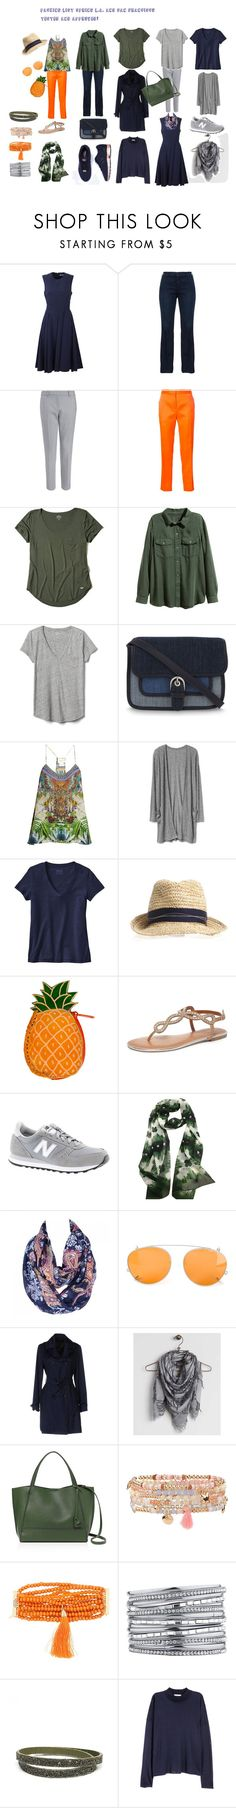 """""""Capsule Packing List Spring Los Angeles and San Francisco"""" by luniflora on Polyvore featuring Mode, P.A.R.O.S.H., NYDJ, Maison Rabih Kayrouz, Hollister Co., Gap, MICHAEL Michael Kors, Camilla, Patagonia und Dorothy Perkins"""